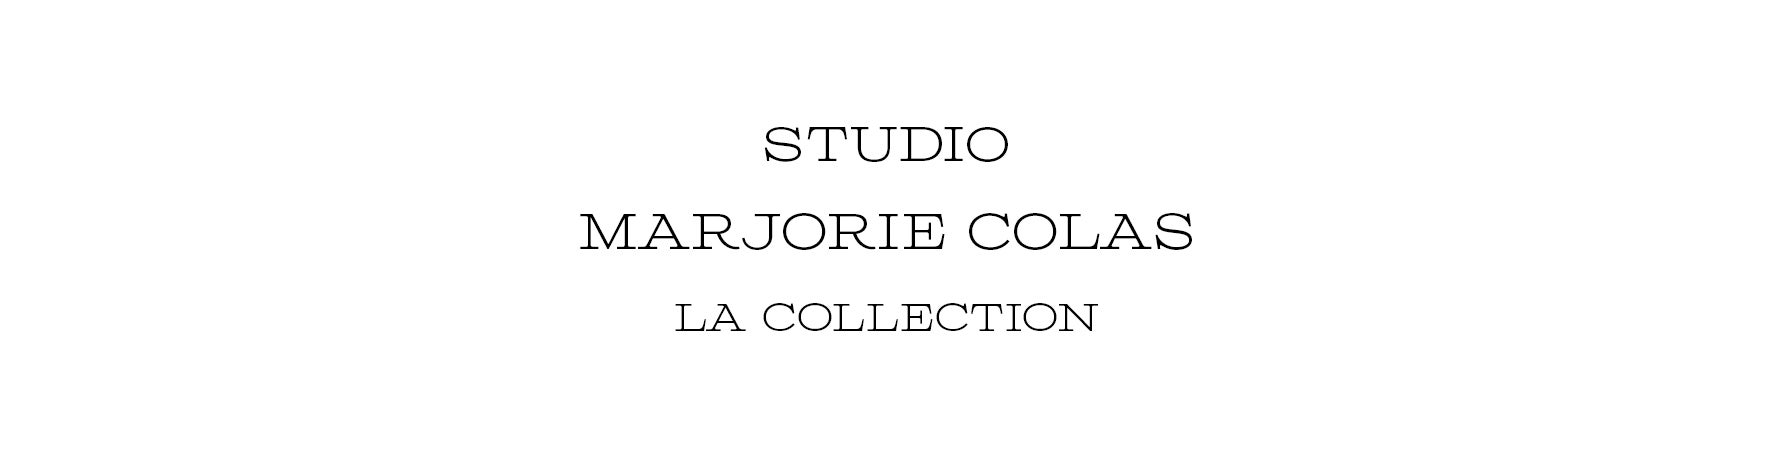 marjorie colas collection Home